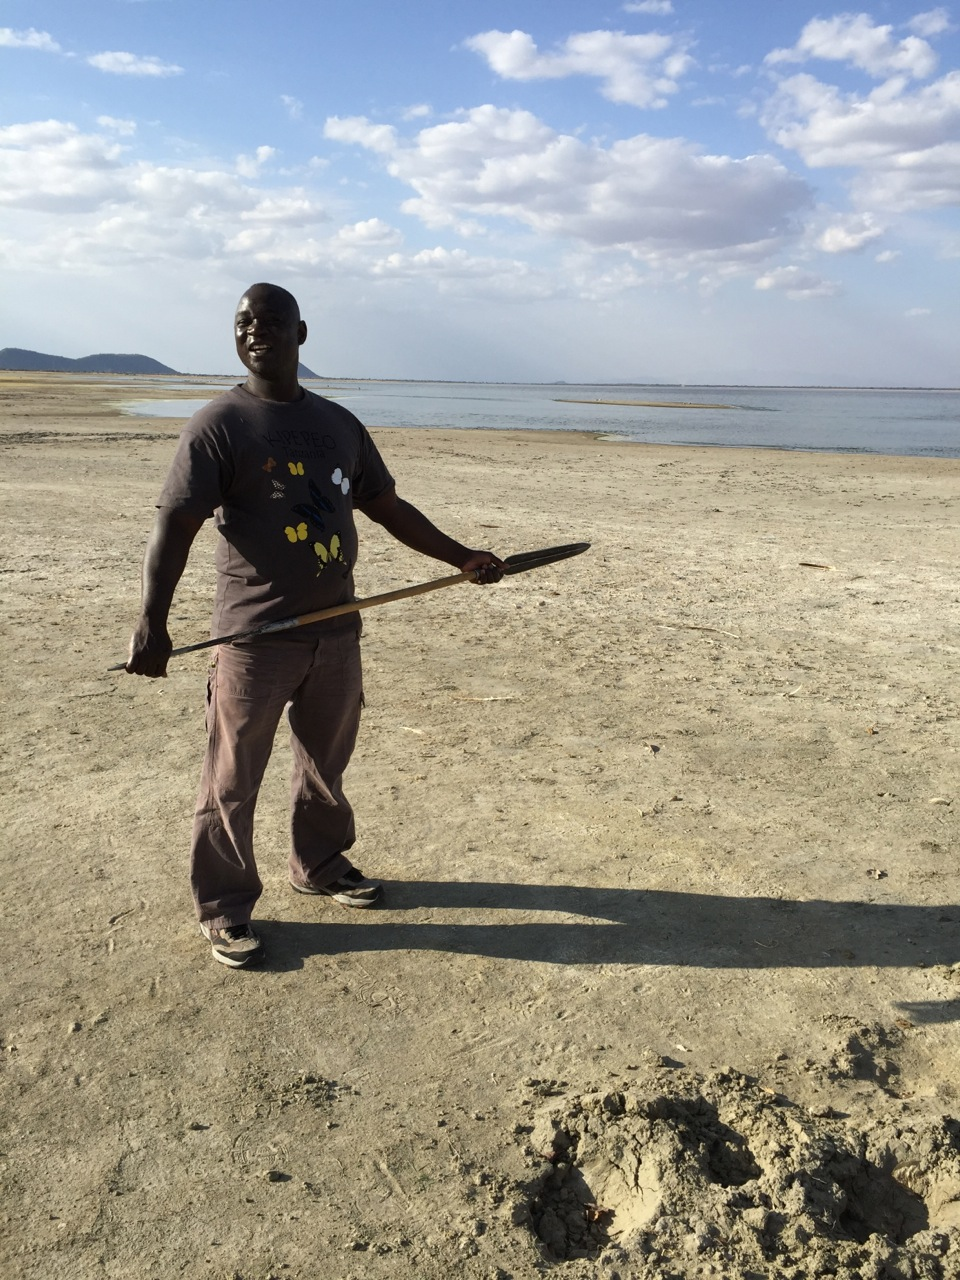 Boniface Faustine, now leading tours in Tanzania for Overseas Adventure Travel, previously worked as a park ranger in the Serengeti National Park.